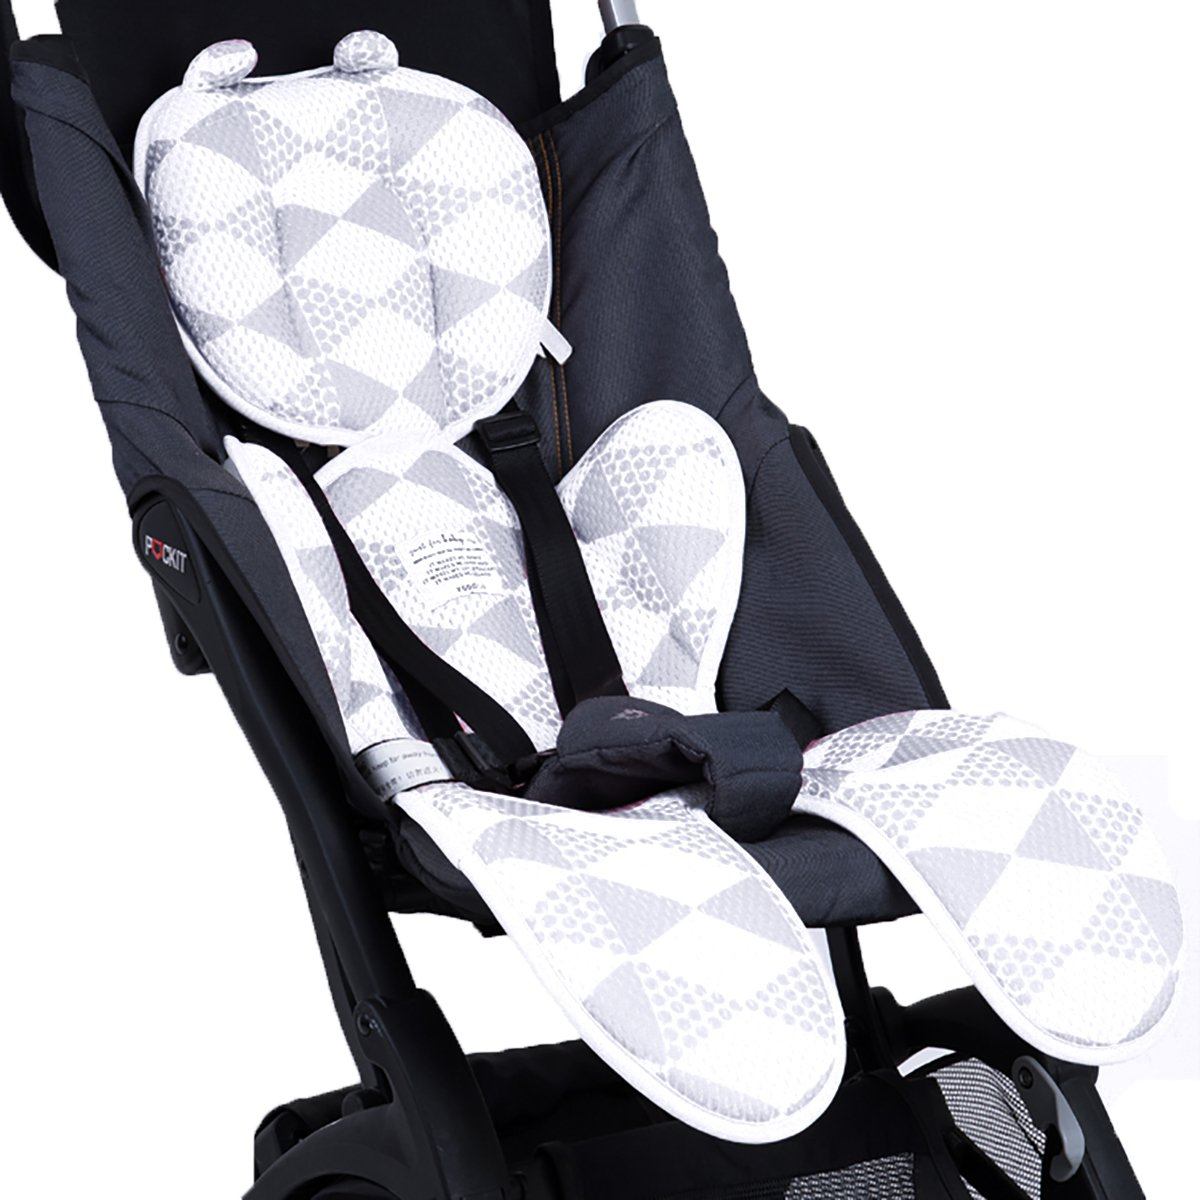 Grey Luchild Pushchair Liner Summer Pram Buggy Stroller Liner Universal Breathable Cool and Comfortable for Newborn Baby